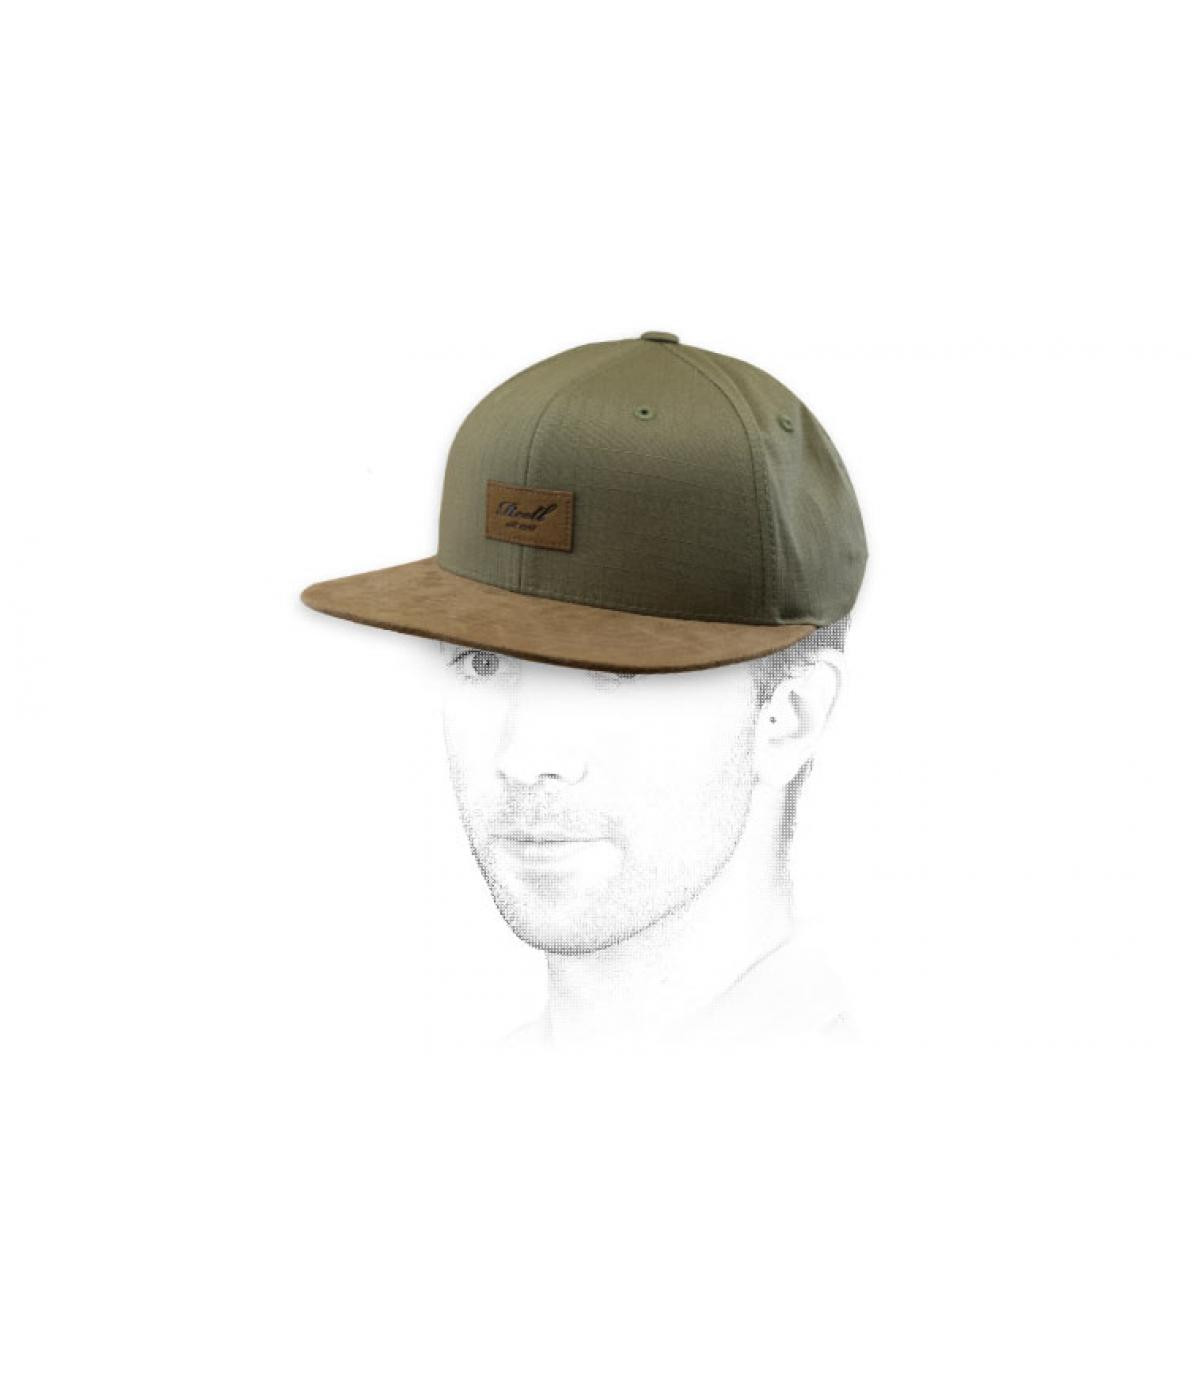 Reell snapback green suede